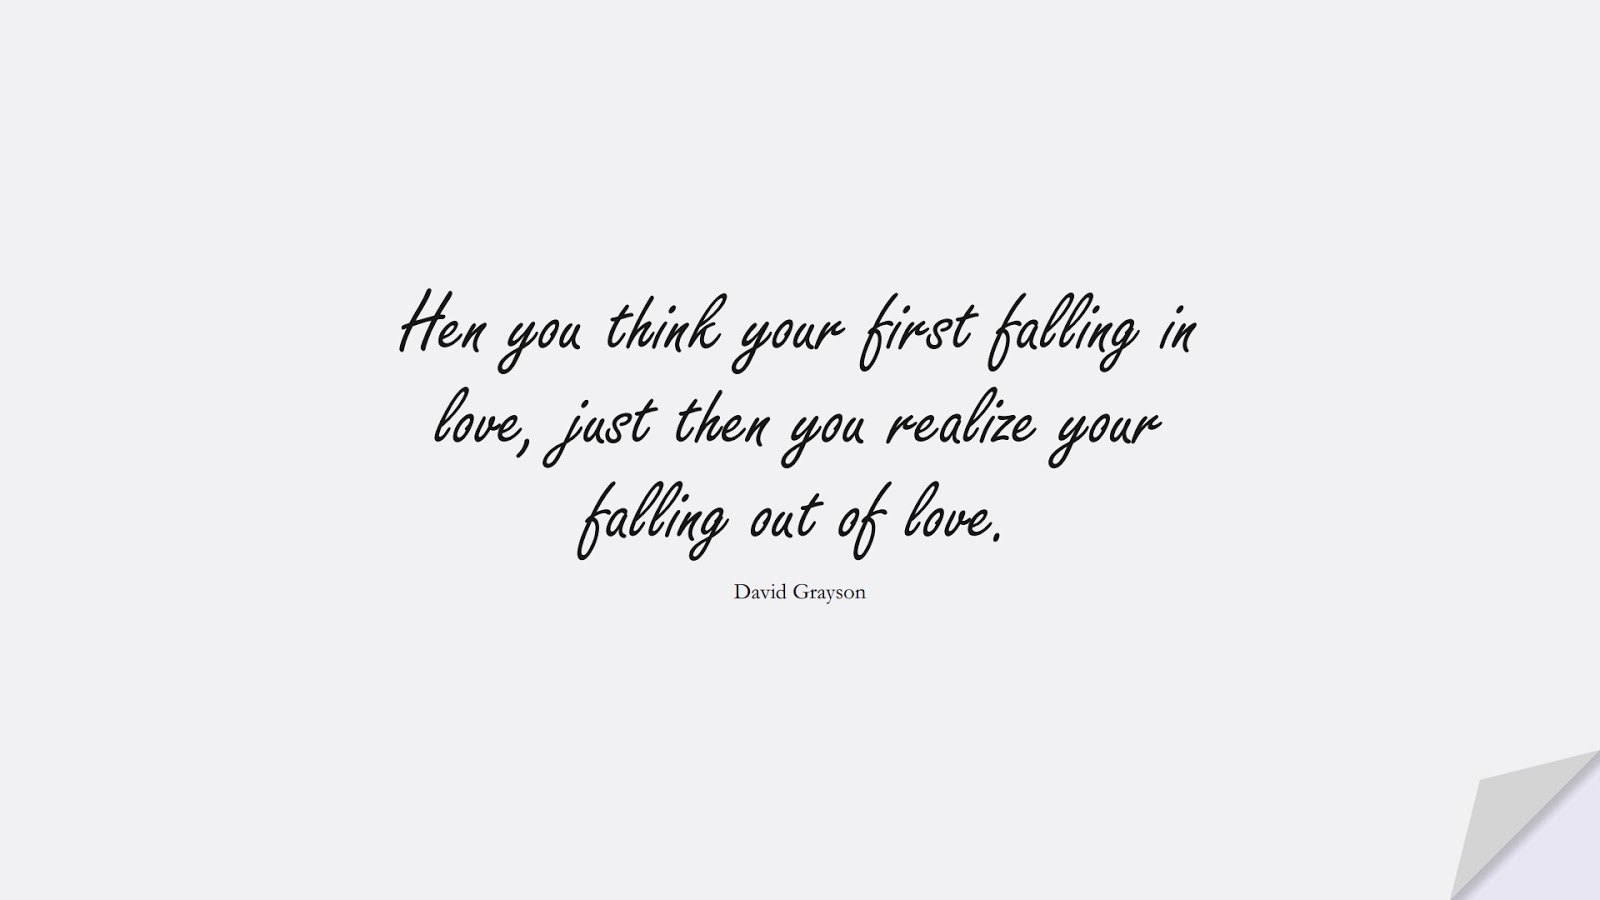 Hen you think your first falling in love, just then you realize your falling out of love. (David Grayson);  #SadLoveQuotes